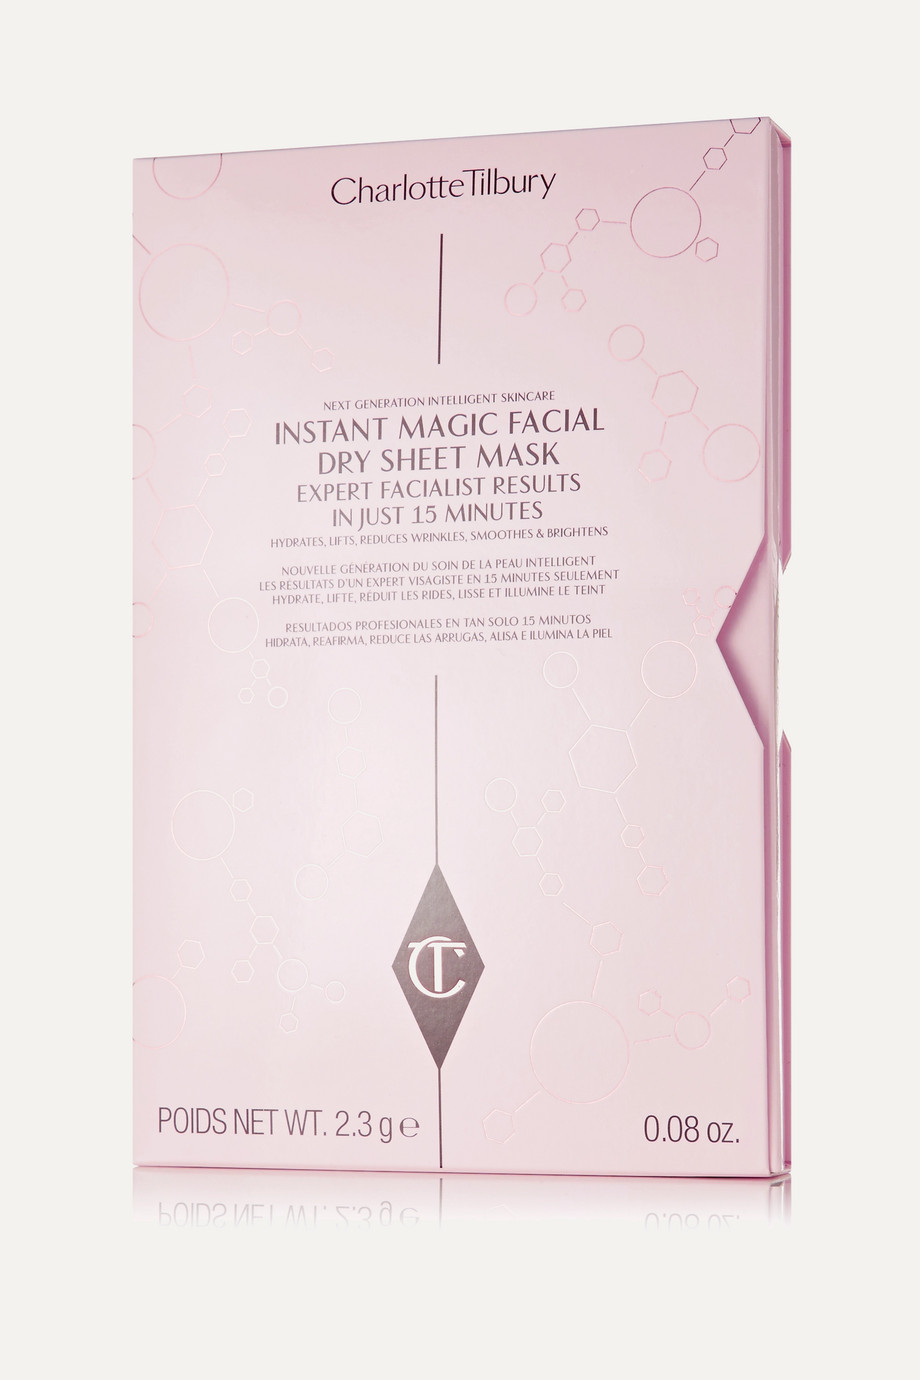 Charlotte Tilbury Instant Magic Facial Dry Sheet Mask x 4